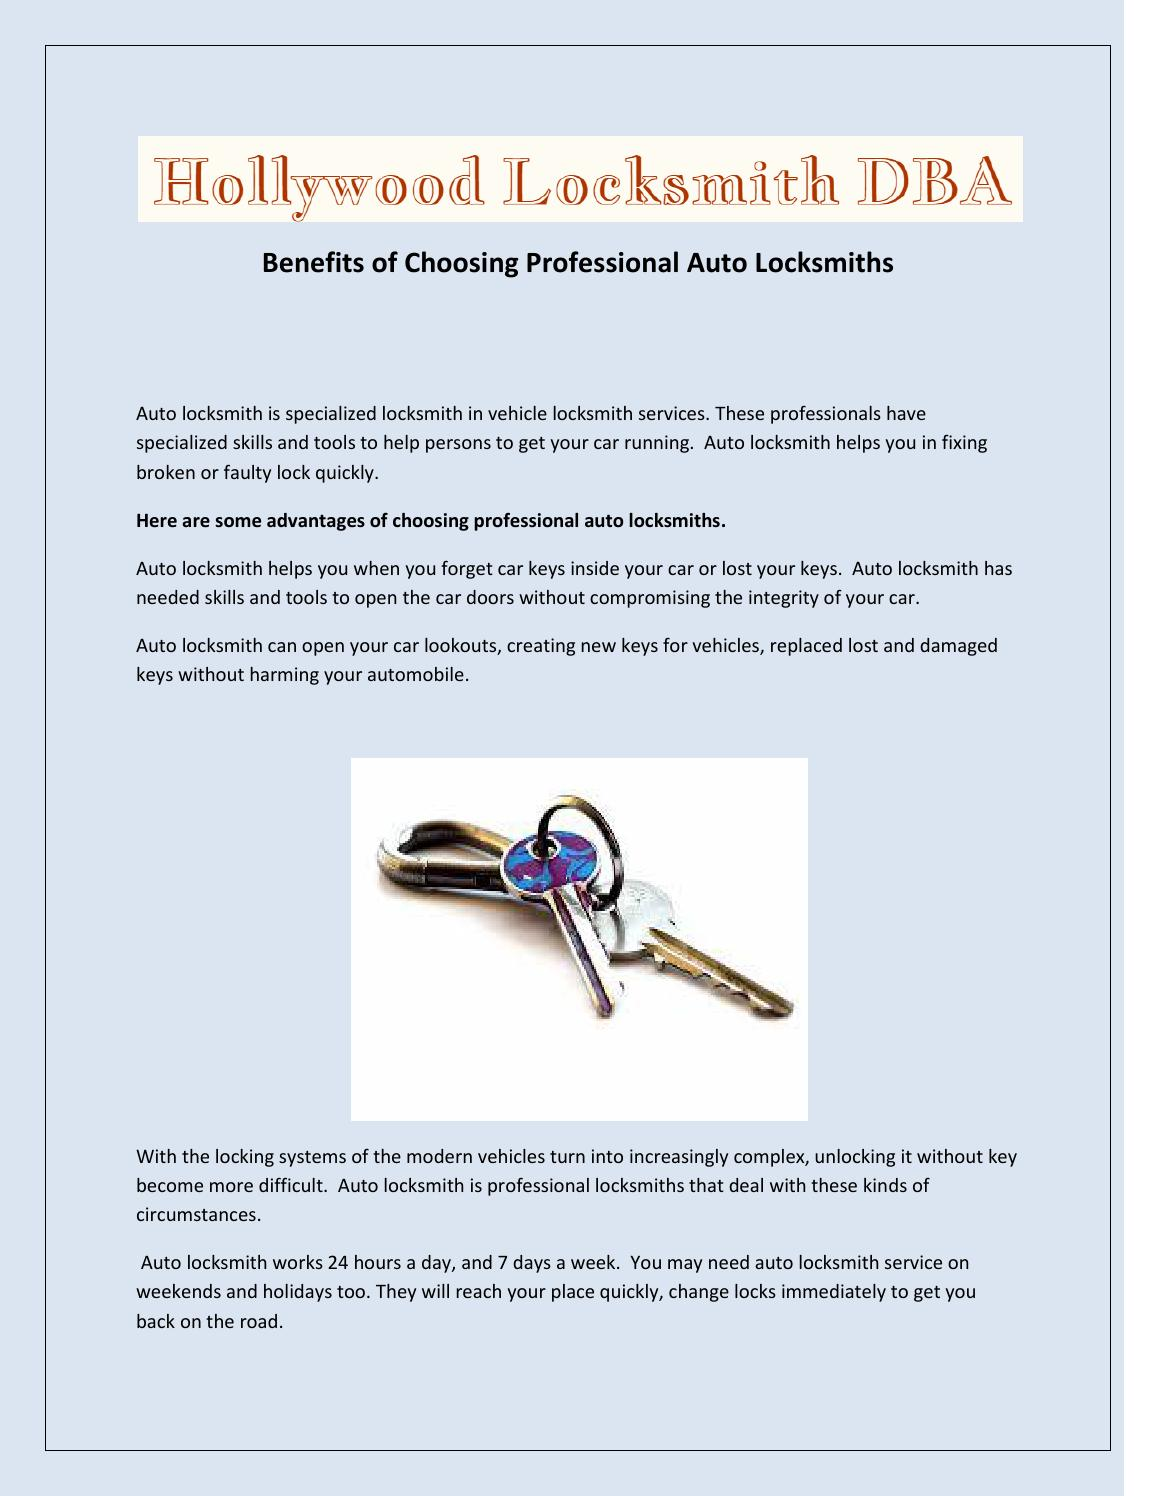 Benefits of Choosing Professional Auto Locksmiths by